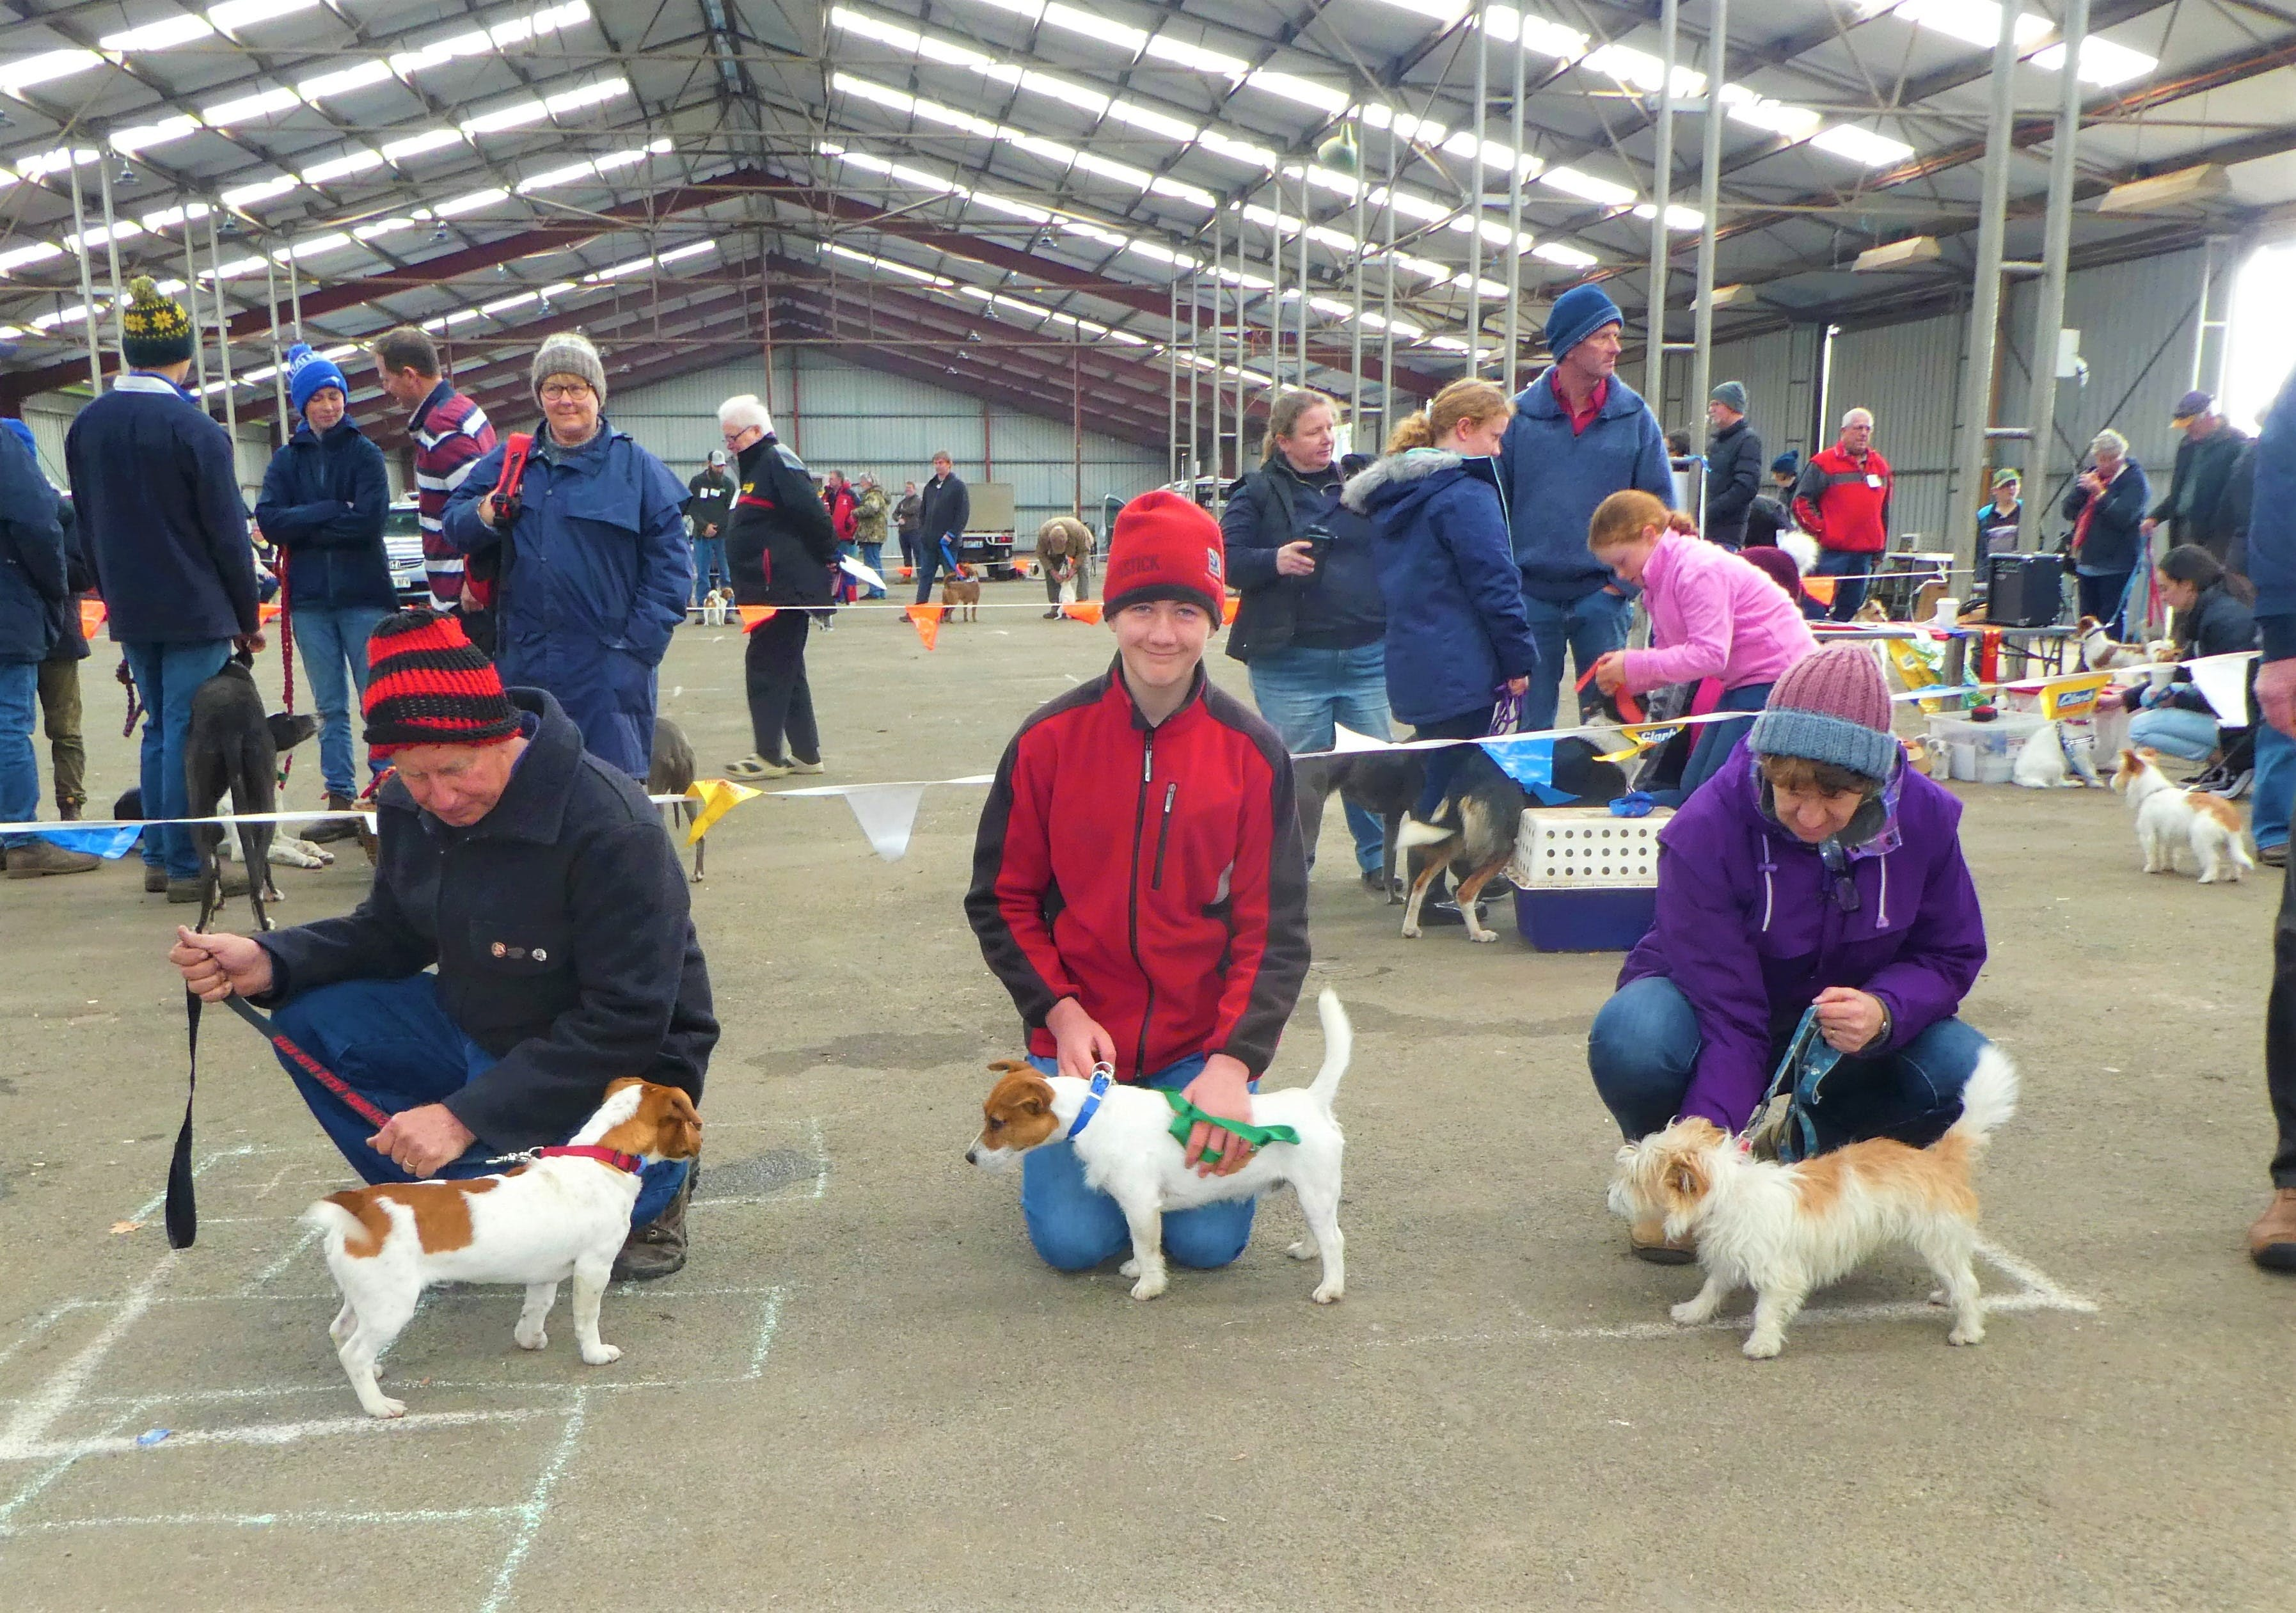 Hamilton Jack Russell Terrier and Hunting Dog Show - Australia Accommodation